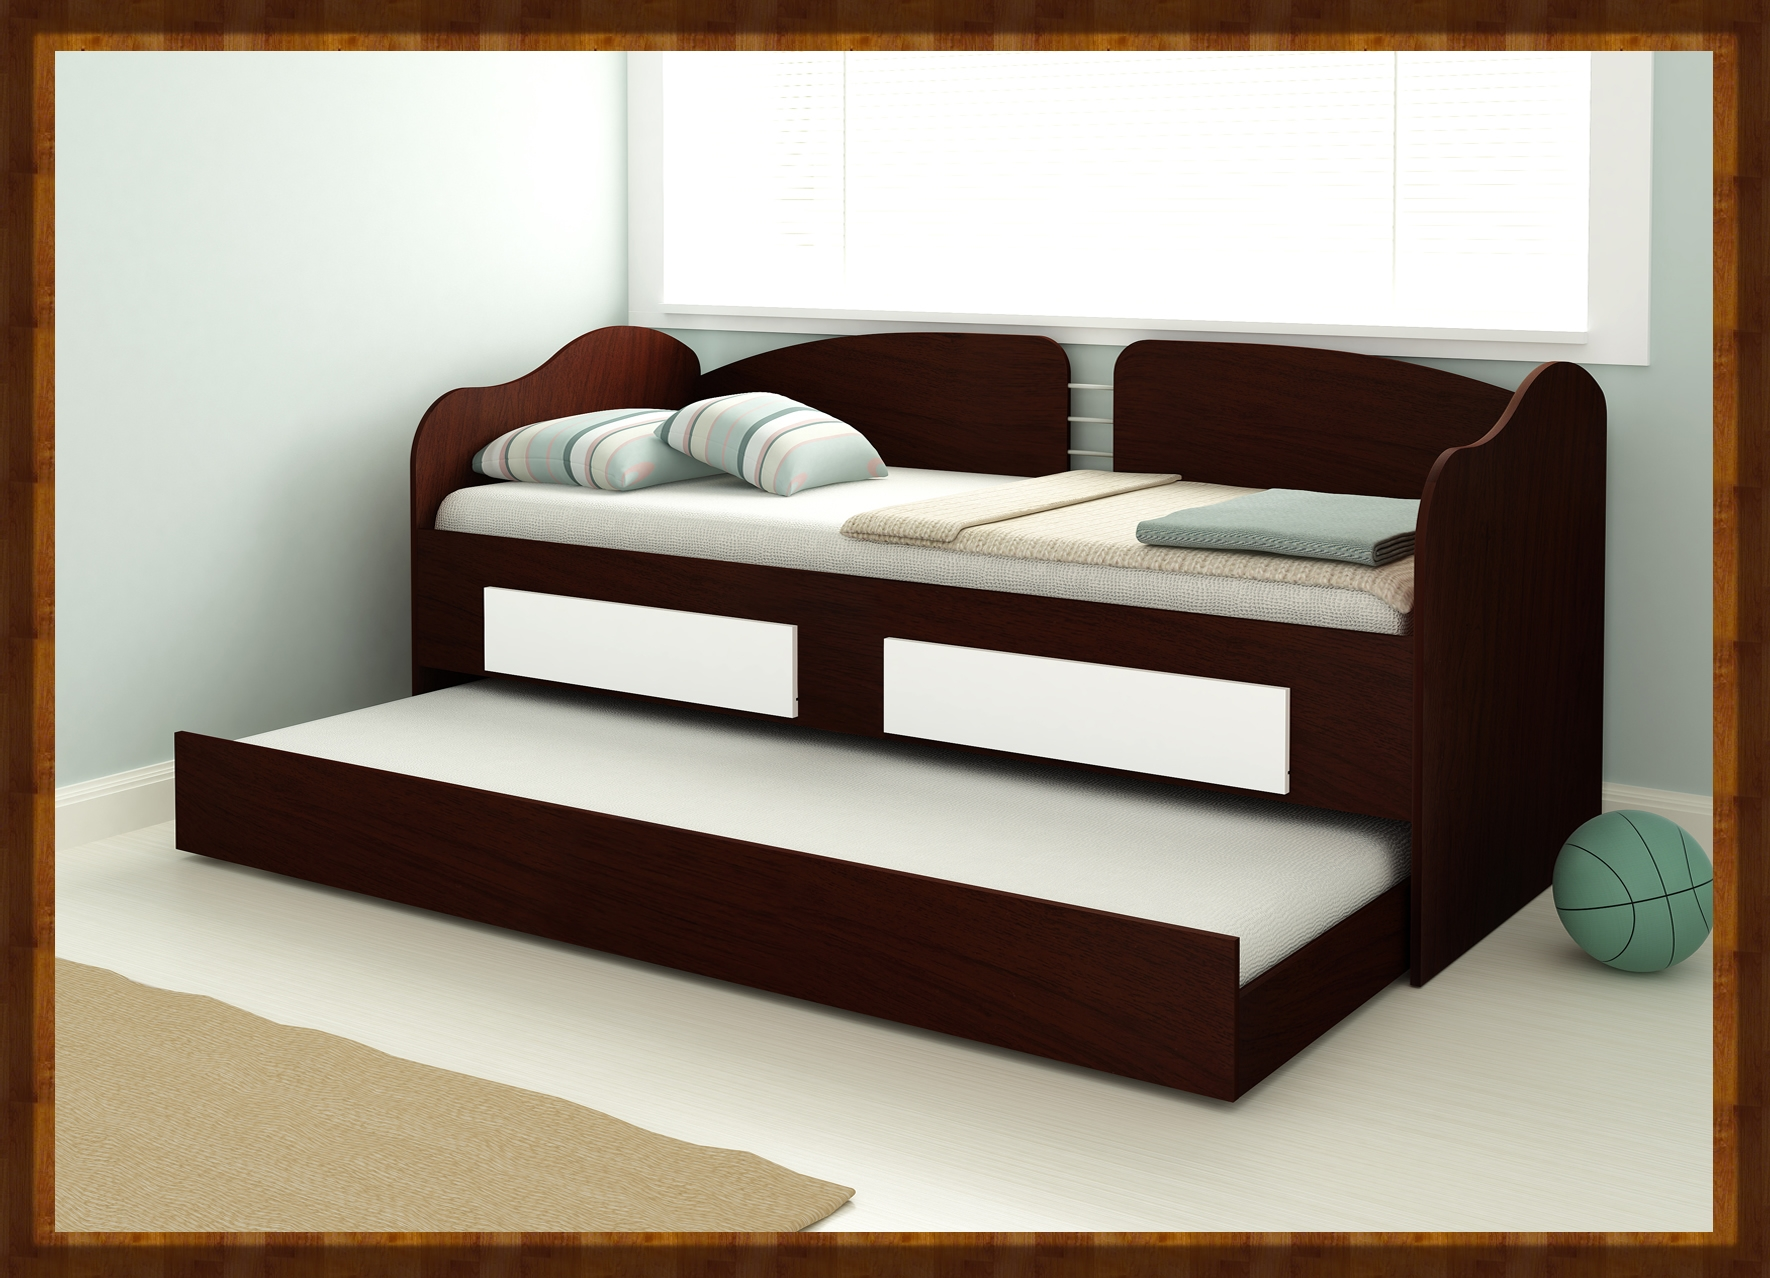 Sofa single beds with 2 drawers and underbed for Single bed sofa